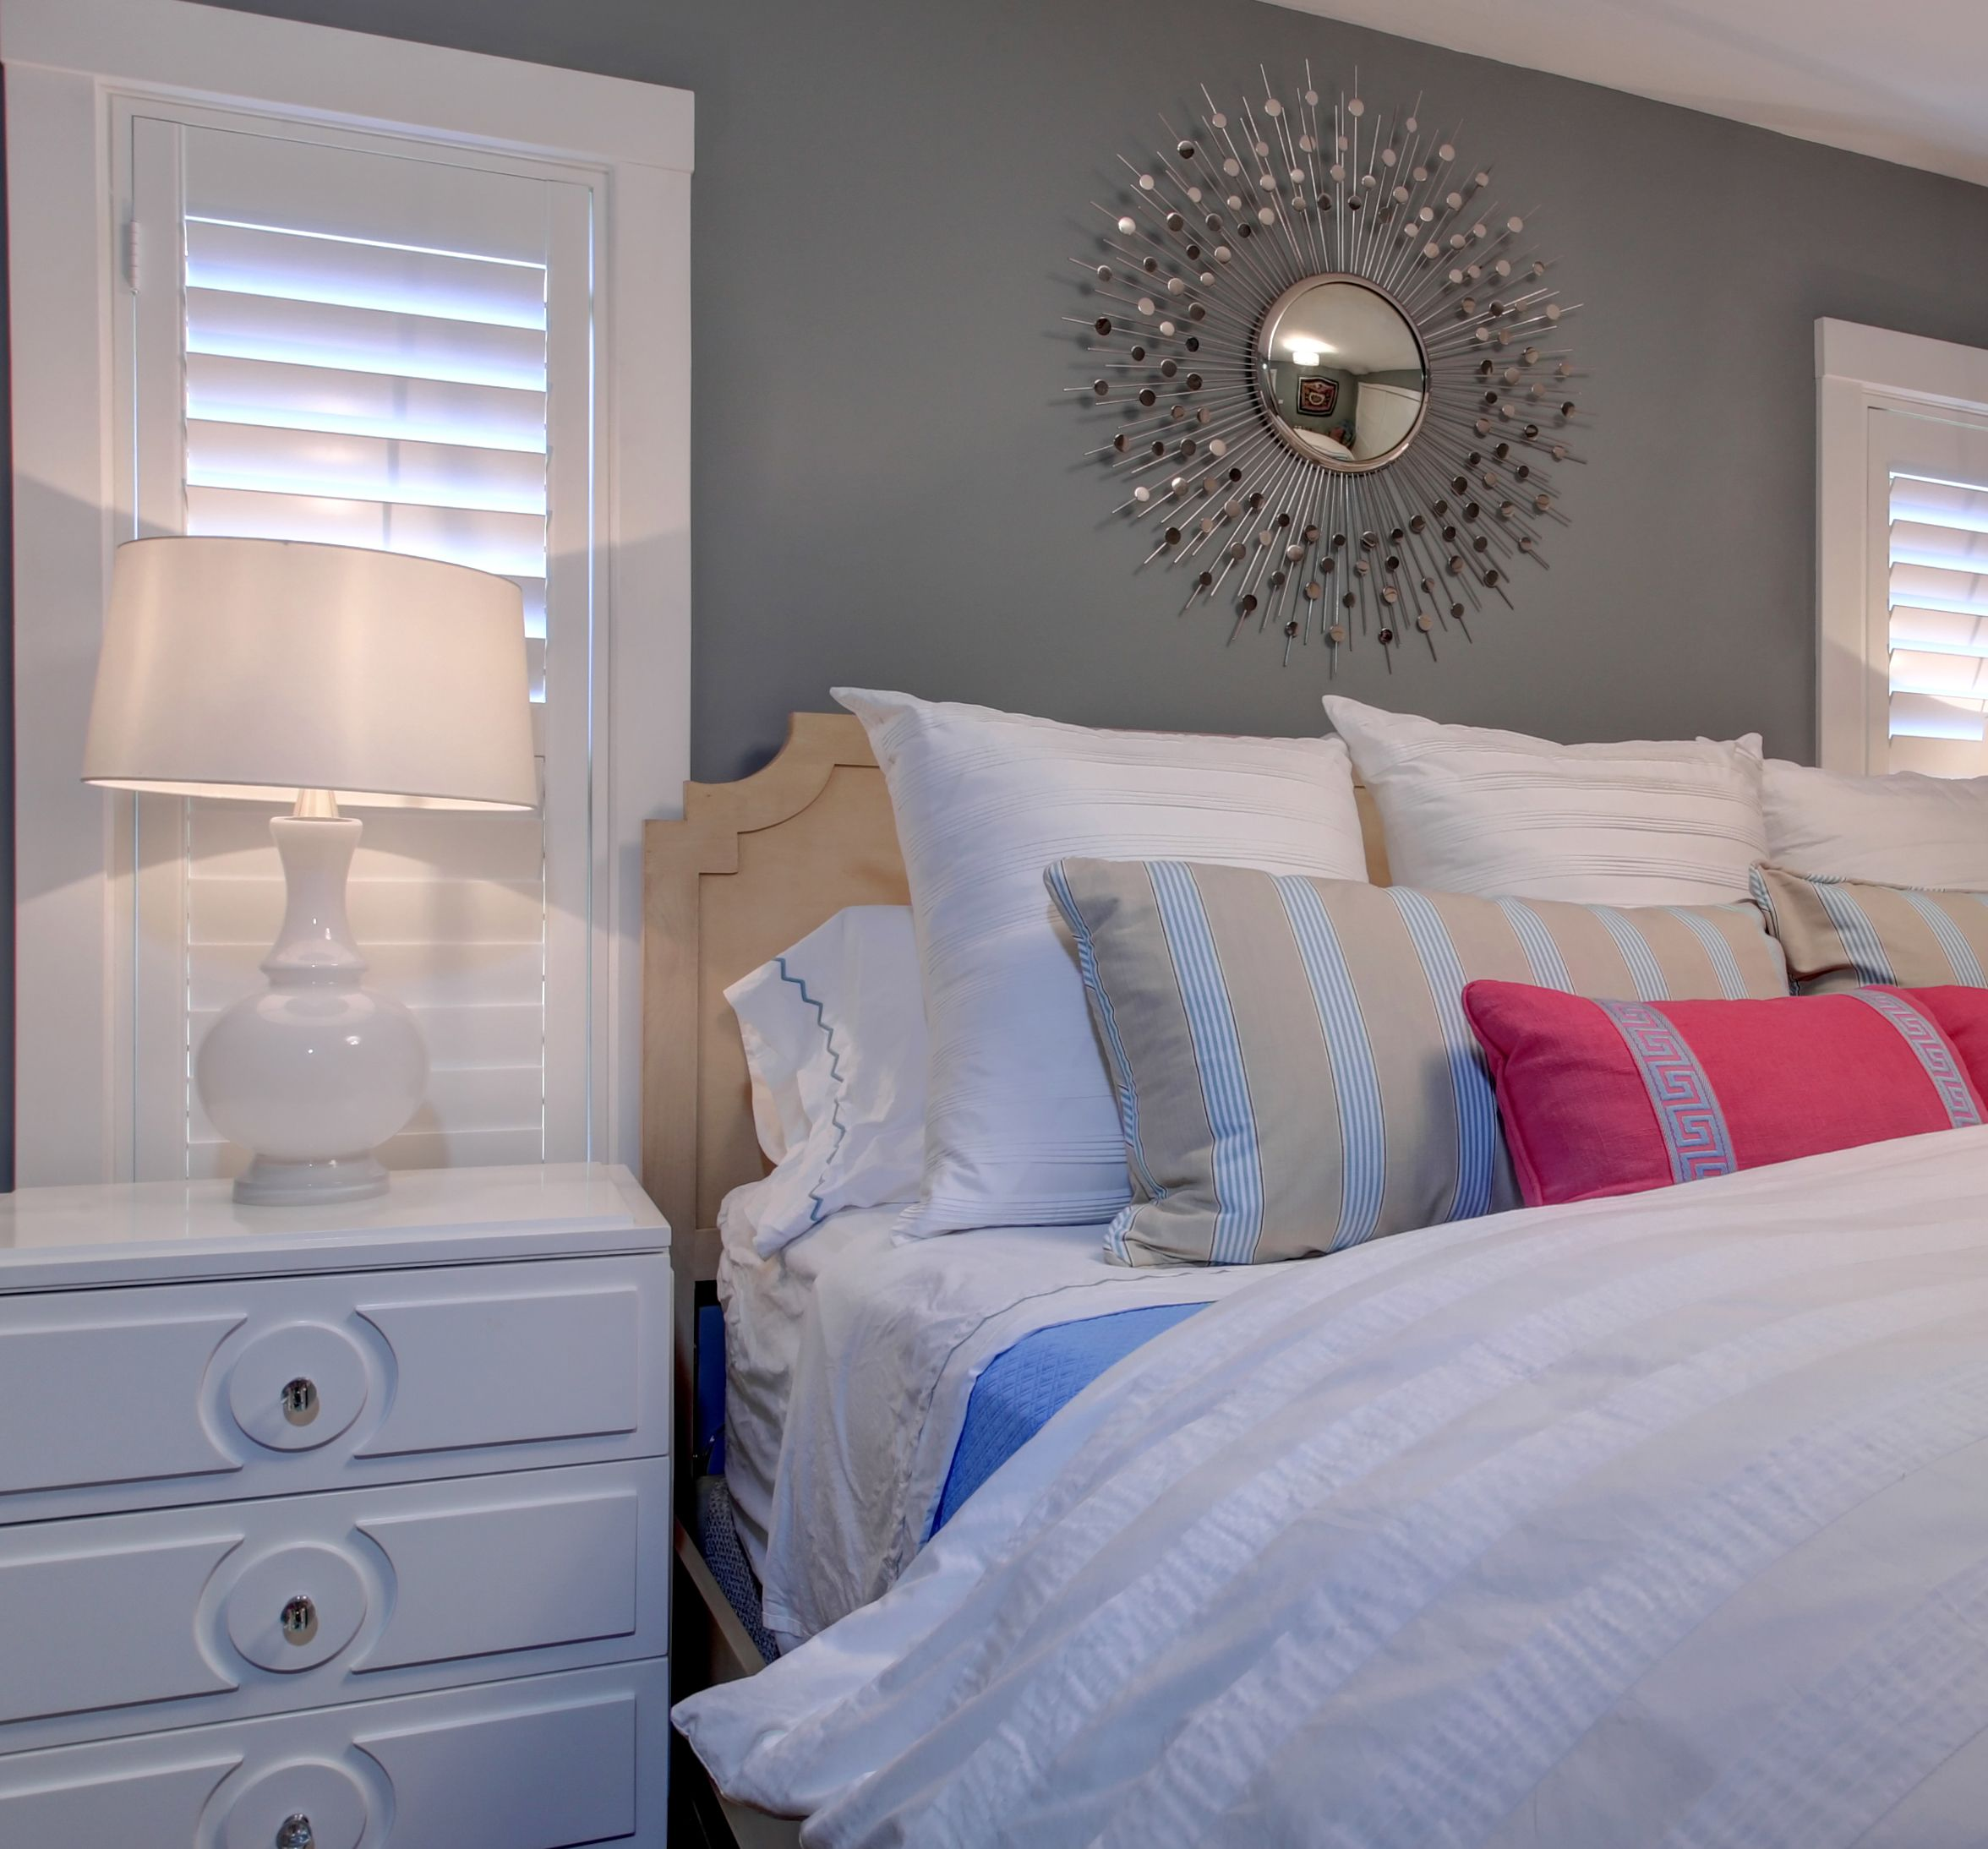 End Accent Wall Midway: Master Bedroom